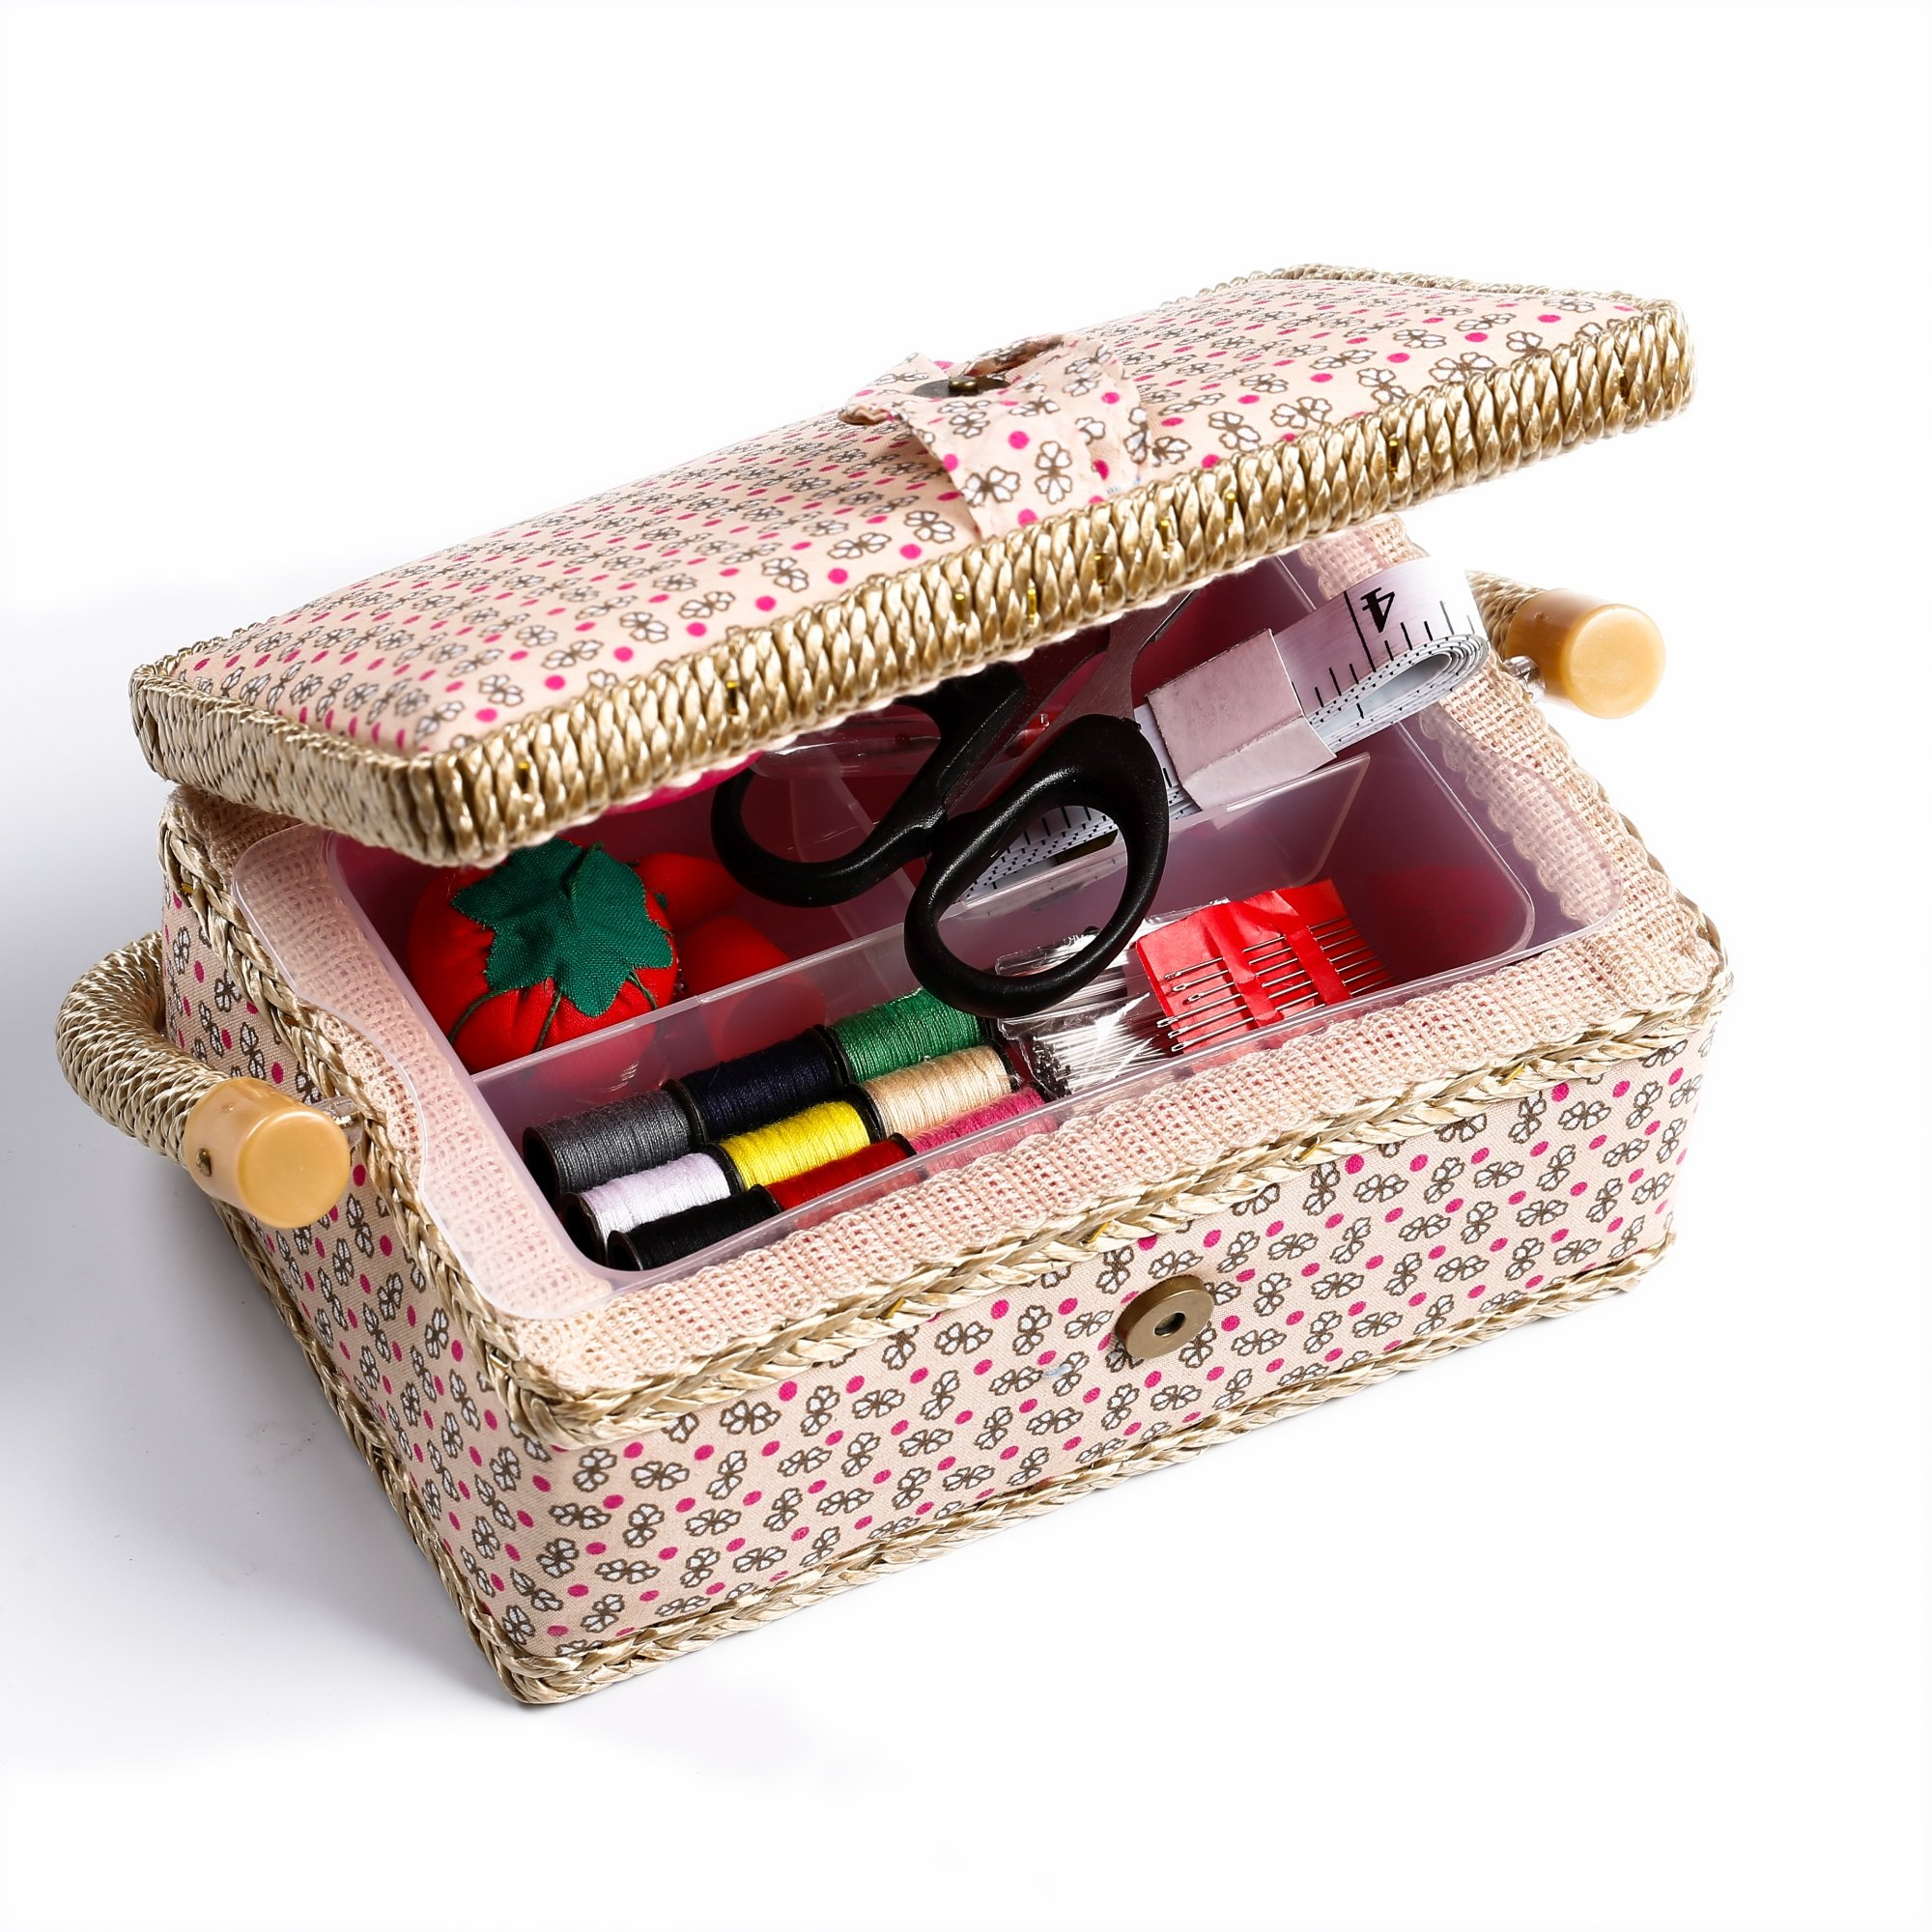 bbloop Small Vintage Sewing Basket with Notions Package - Tan Flower Style by bbloop